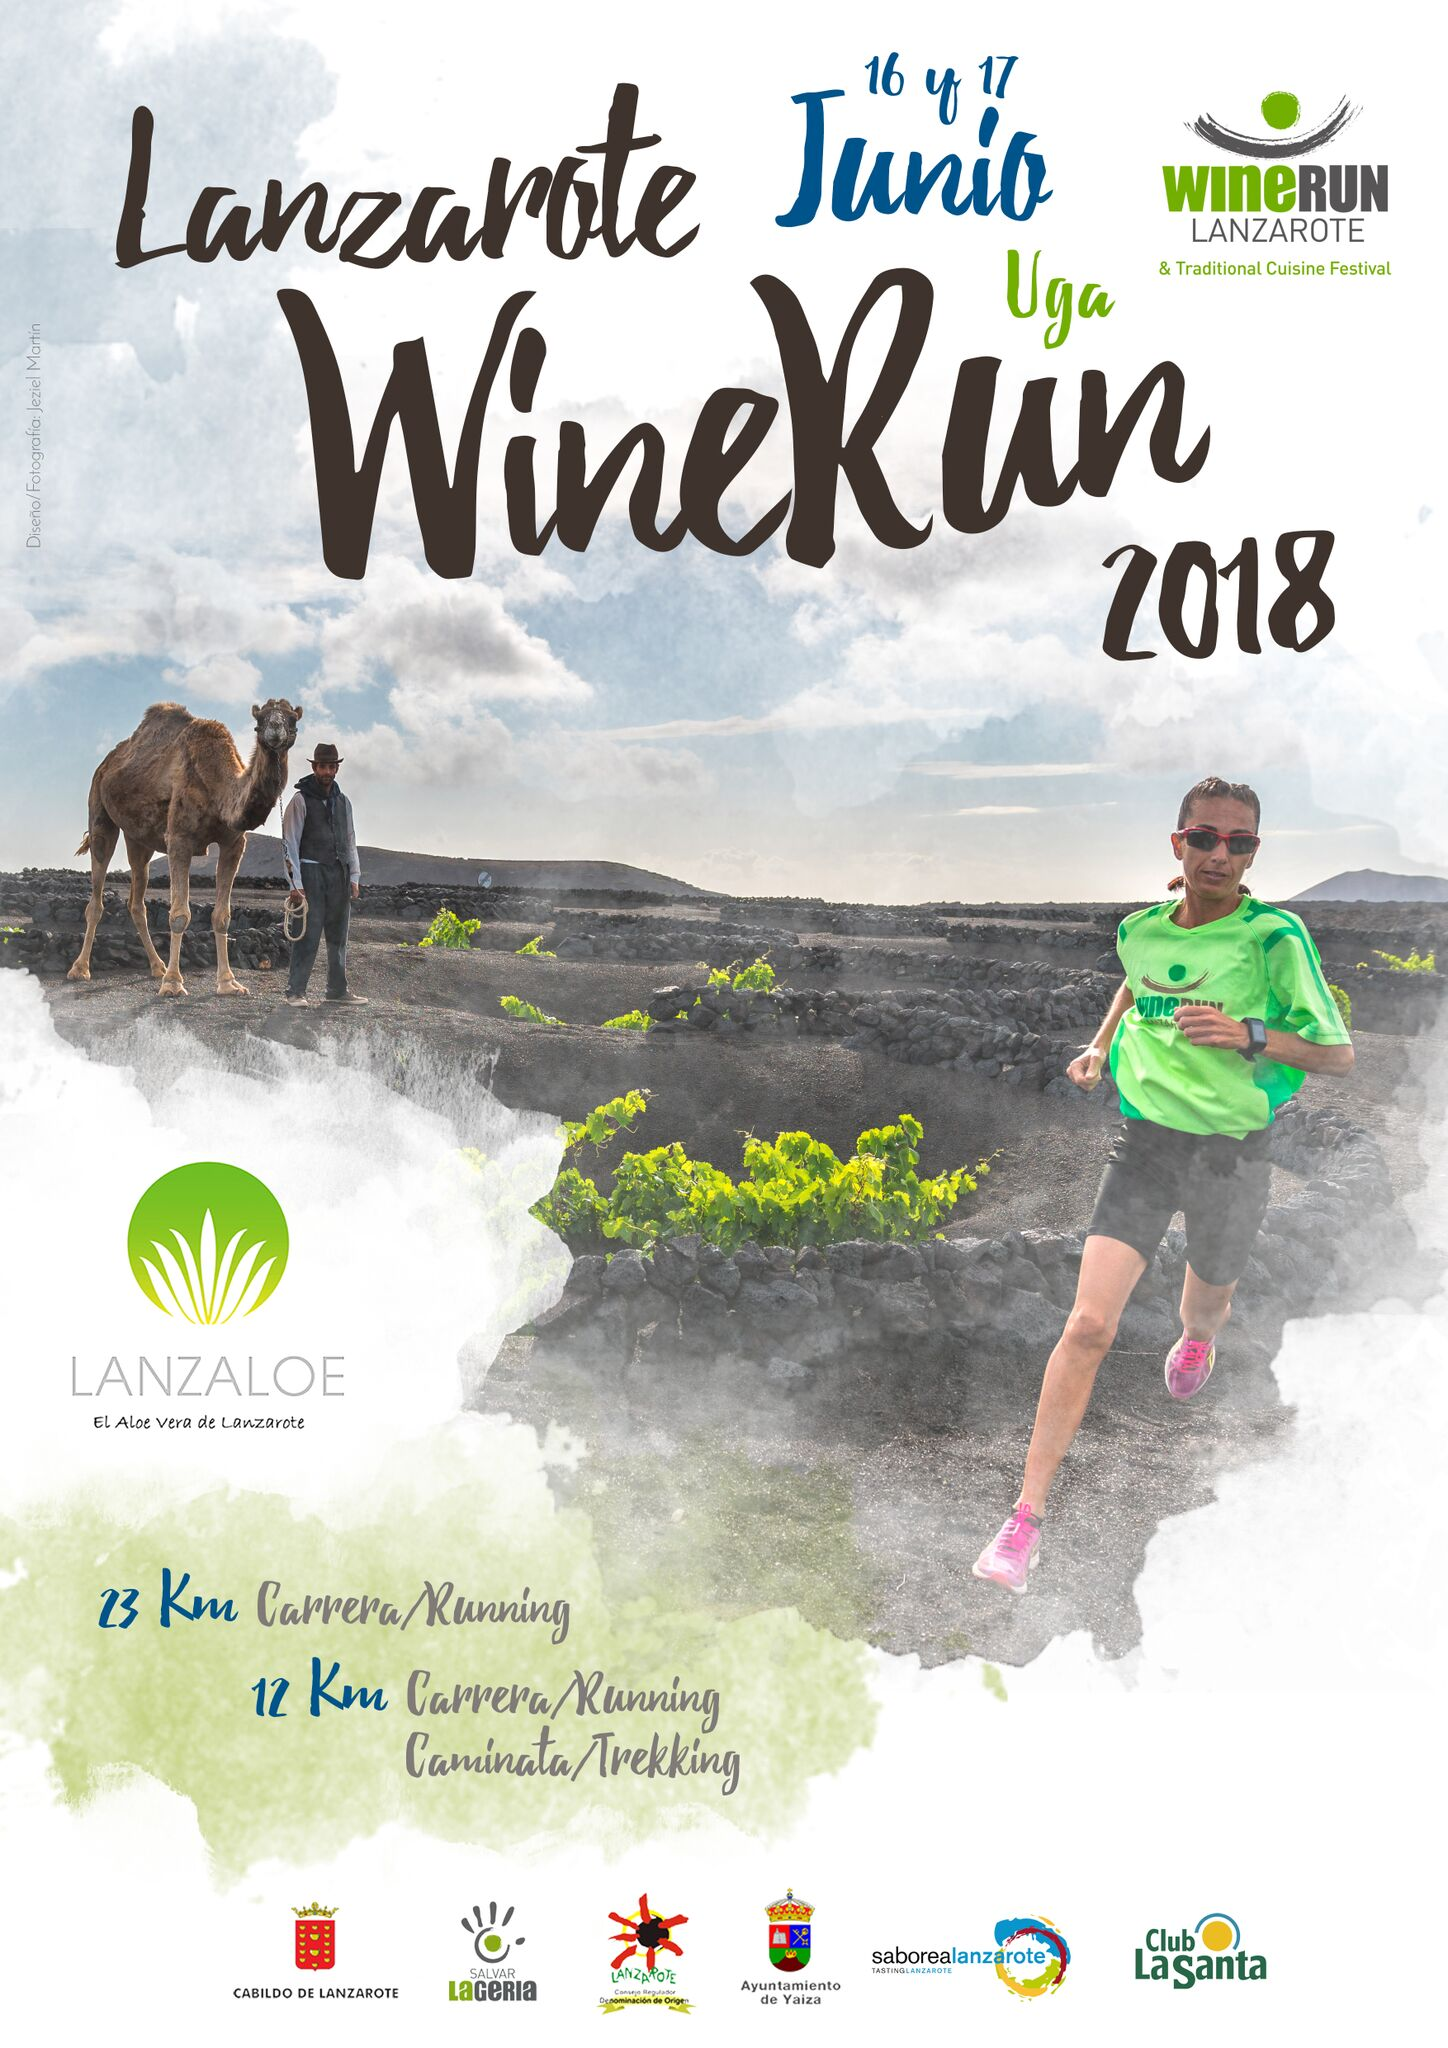 Lanzaloe will be one of the sponsors of the Wine Run race